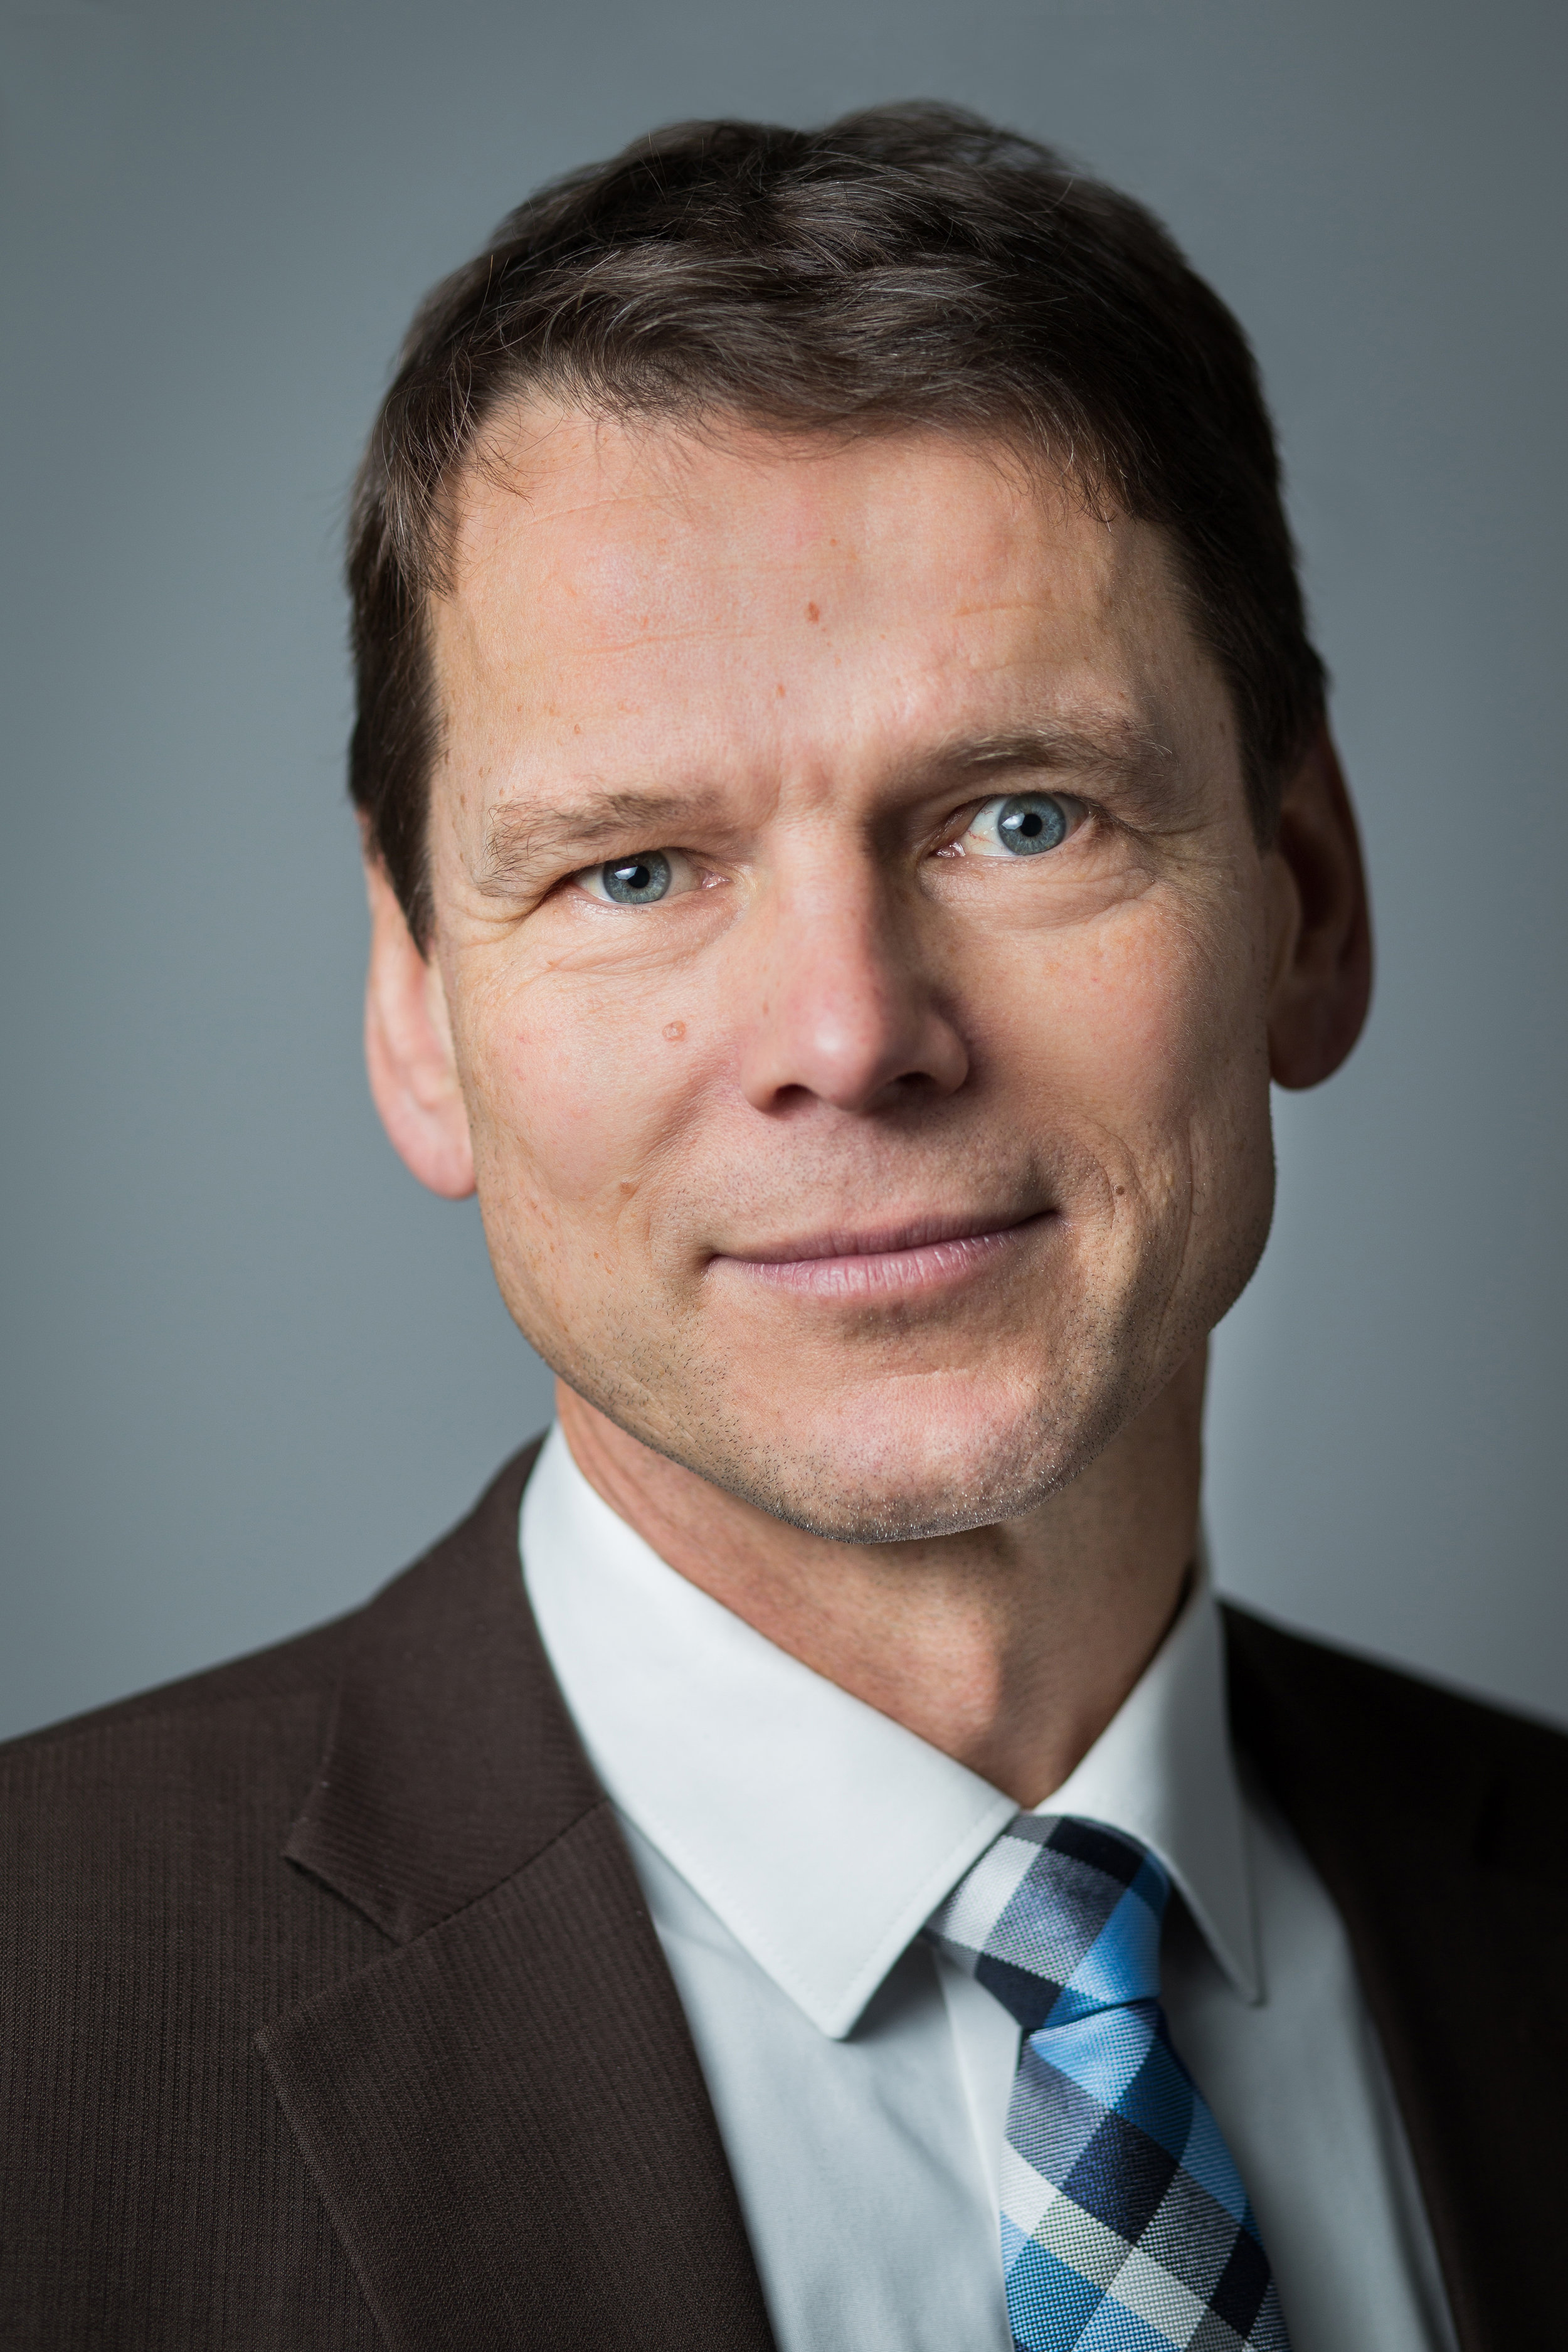 Richard Focken - Chief Executive Officer